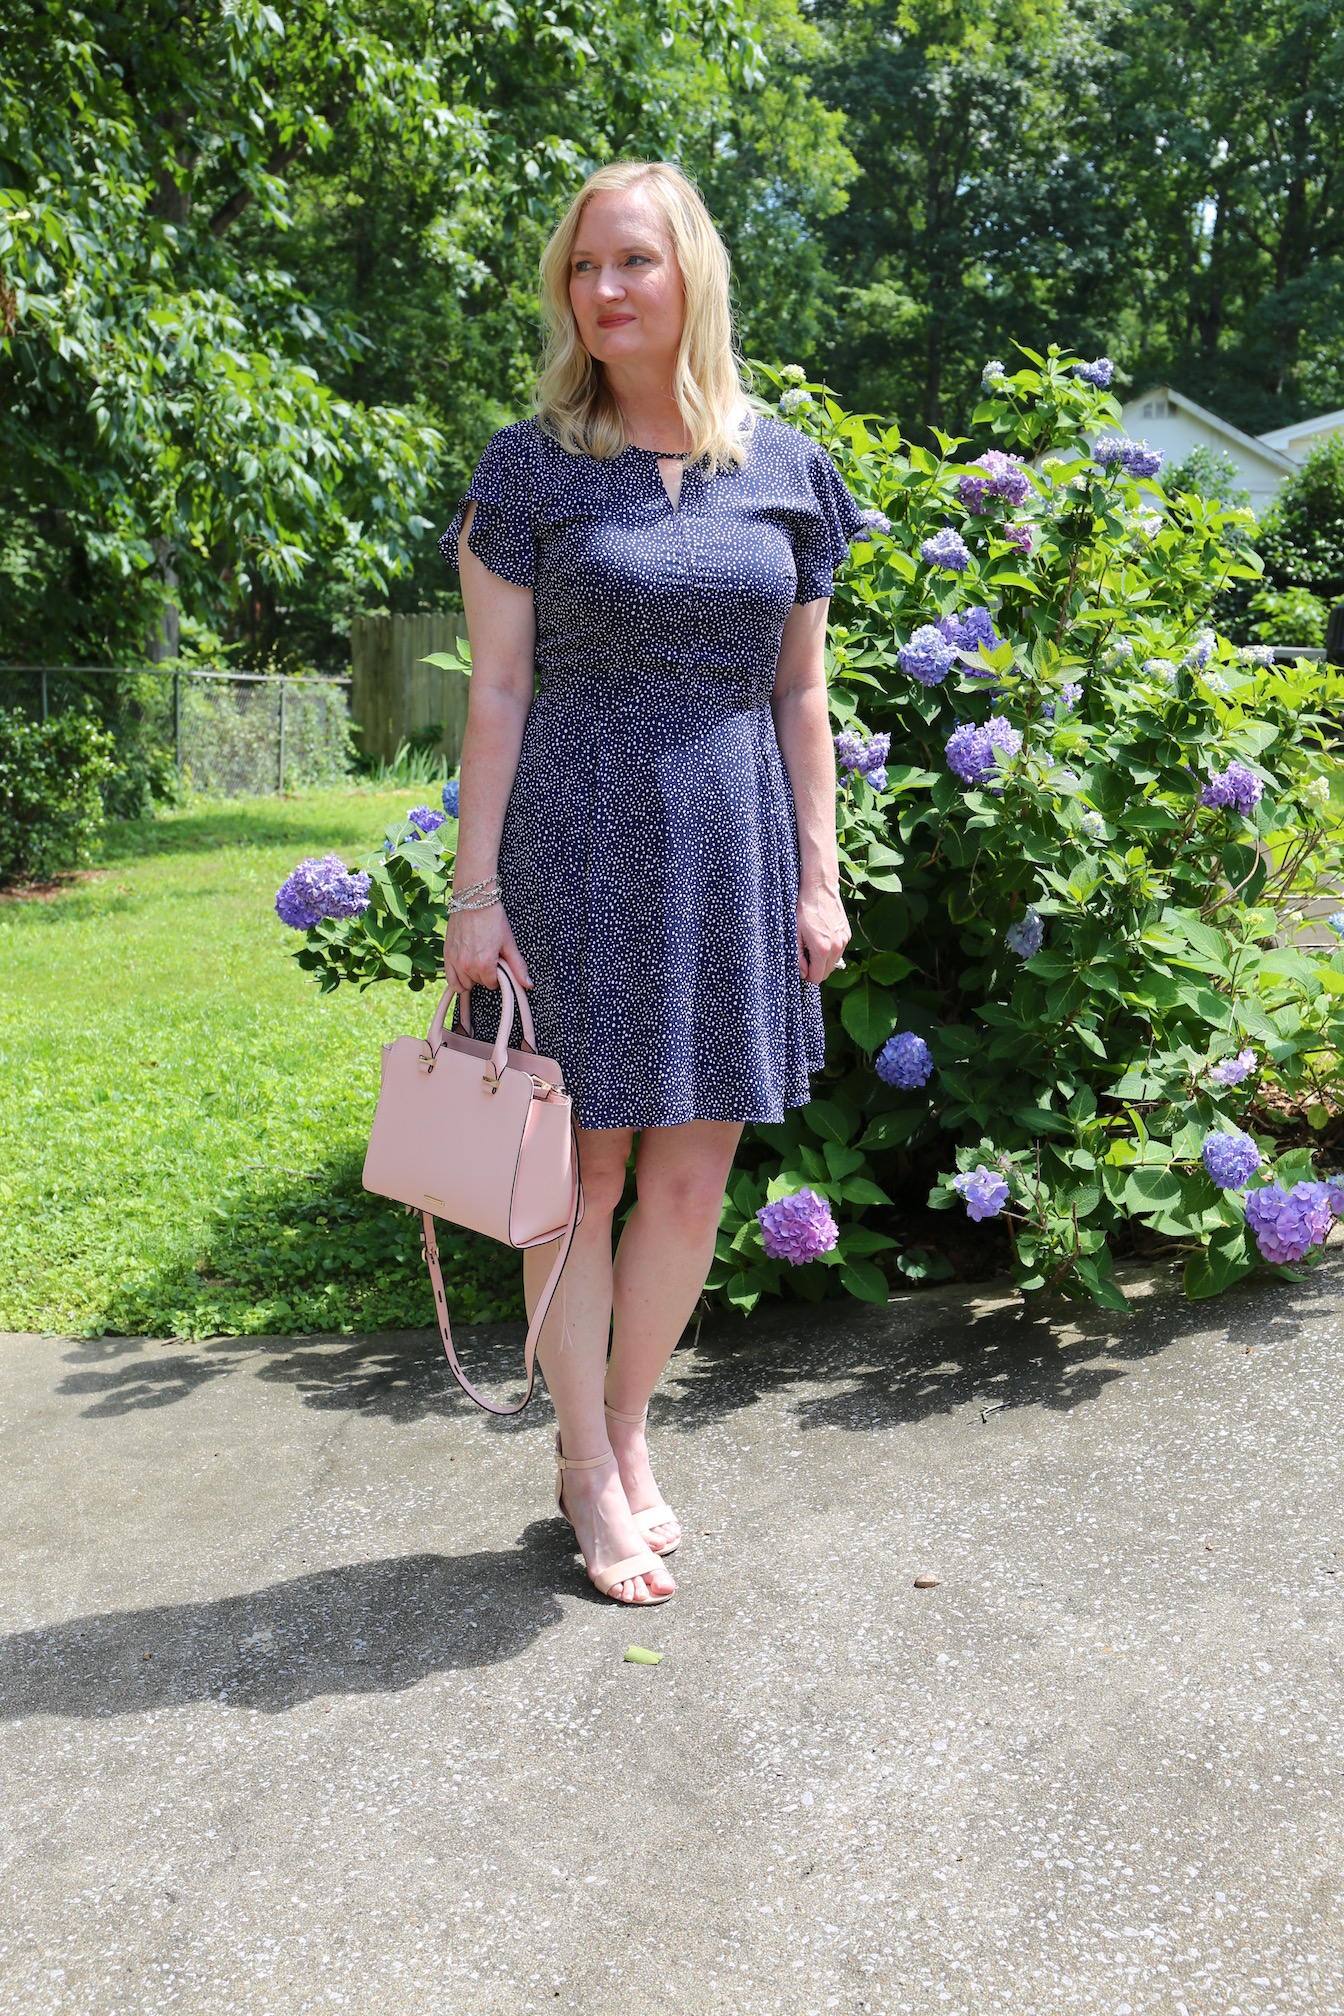 What I Wore To a Summer Wedding 4